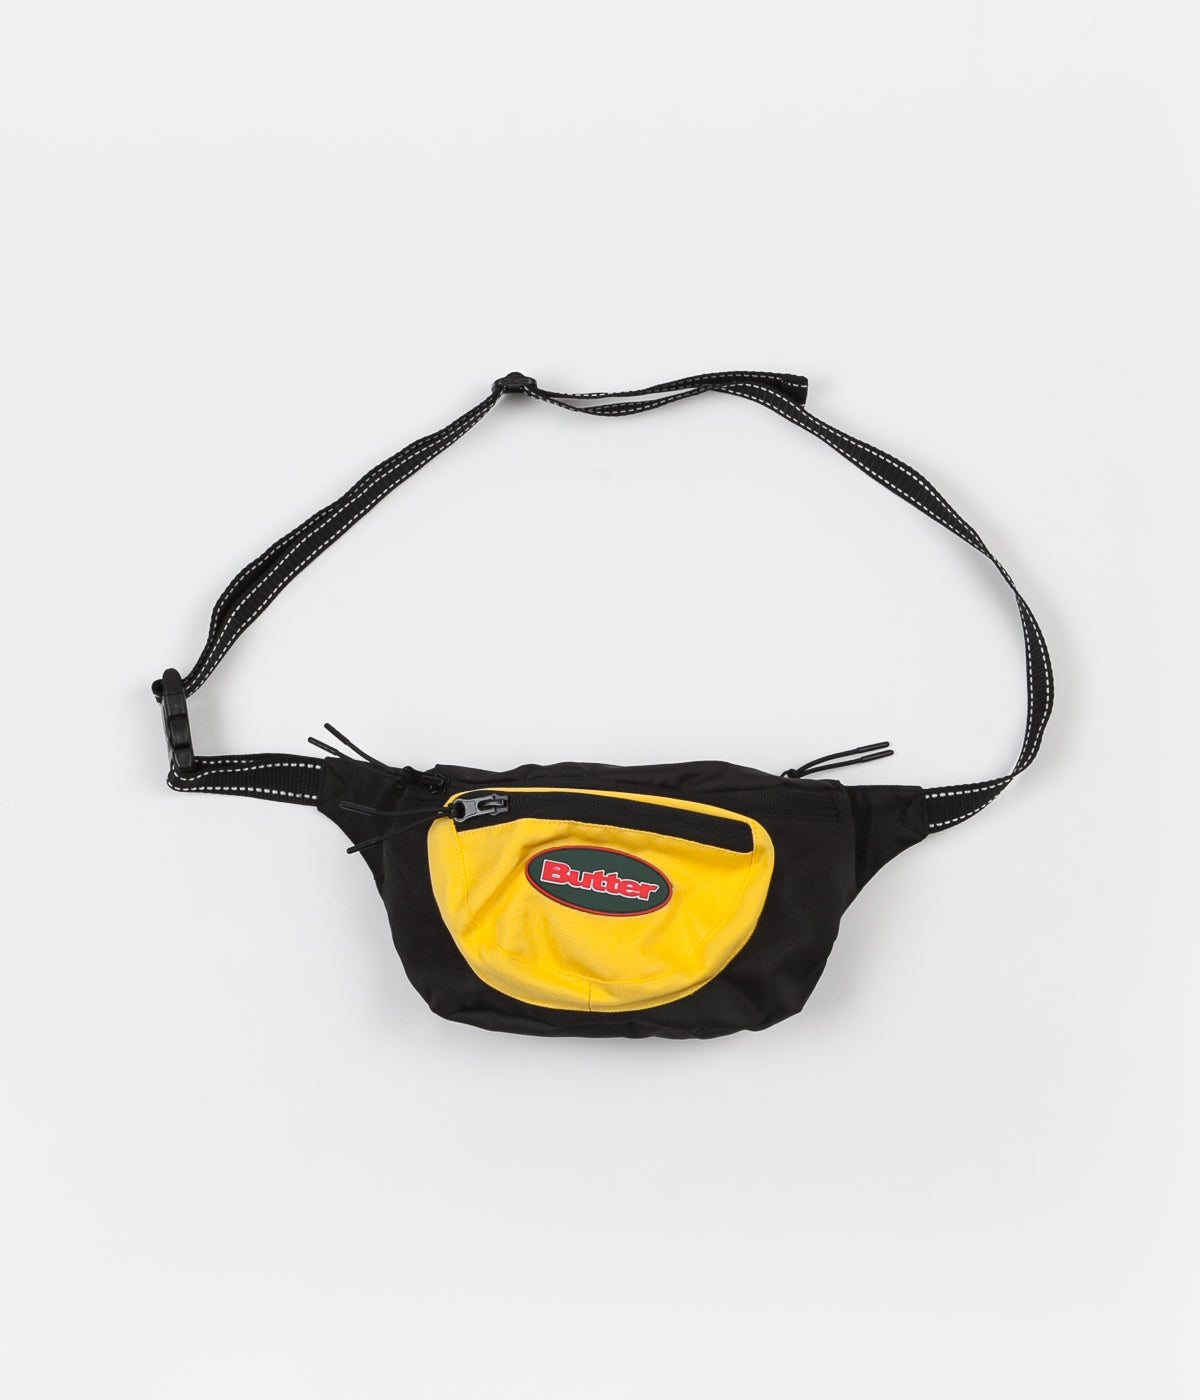 Butter Goods Trail Hip Pack - Black / Yellow